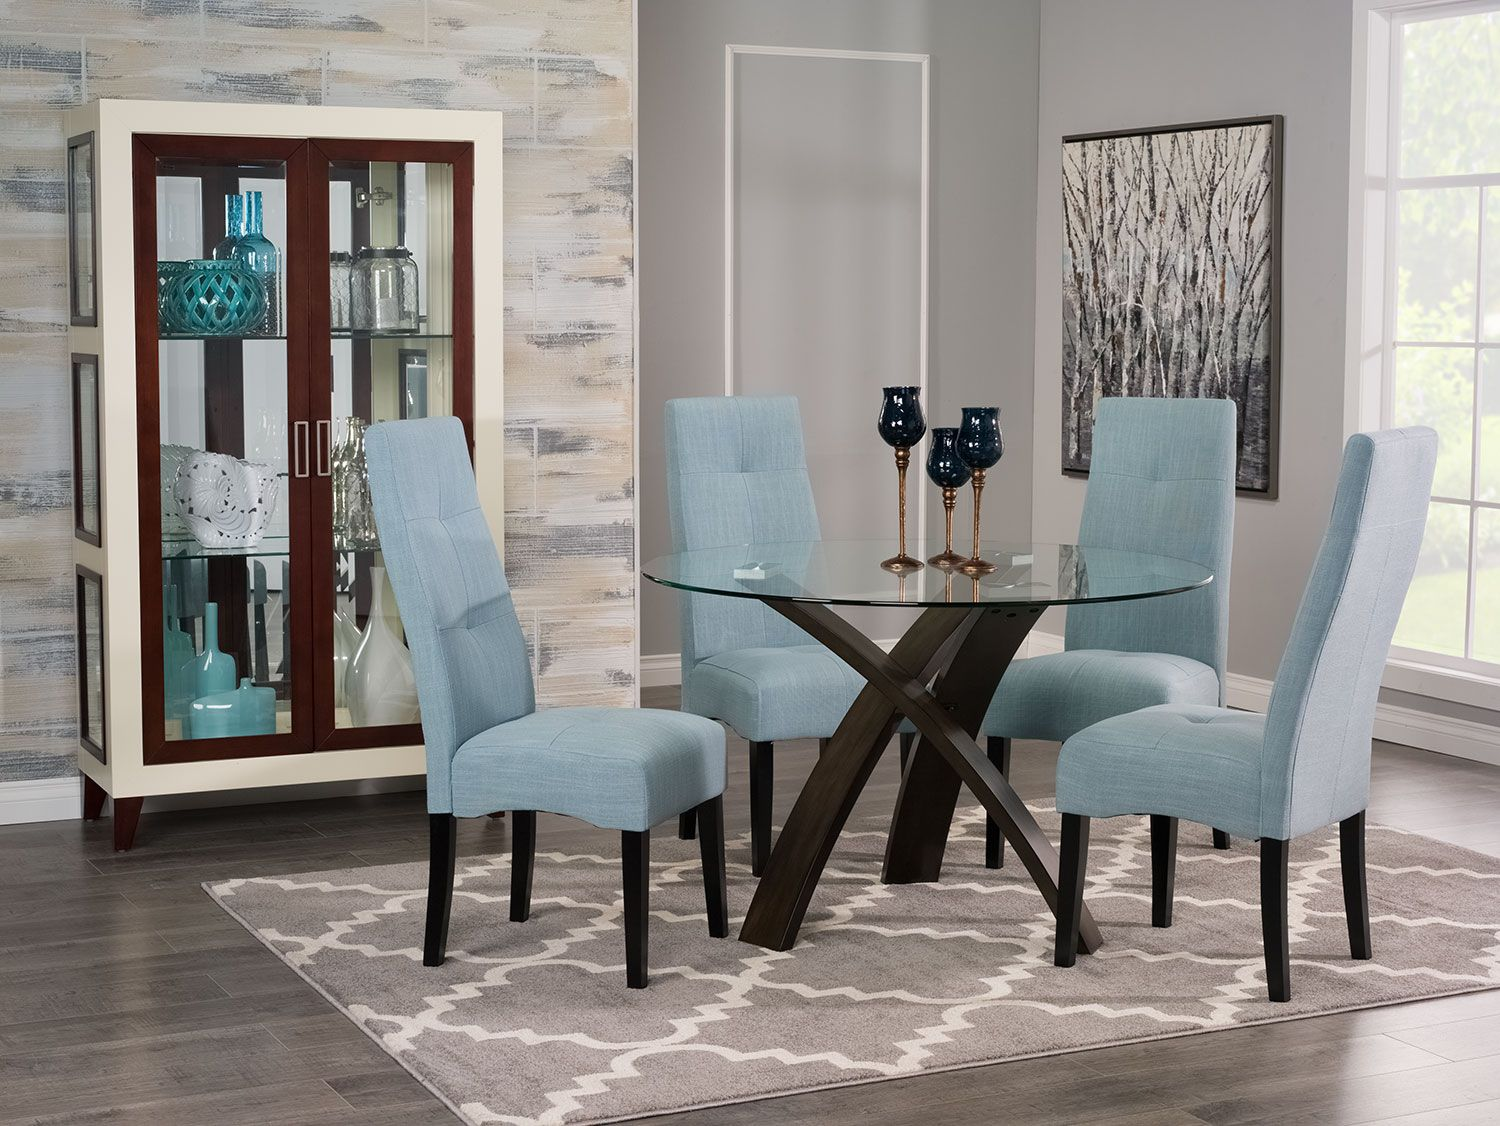 Dining room furniture skye 5 piece dining package with sadie dining chairs light